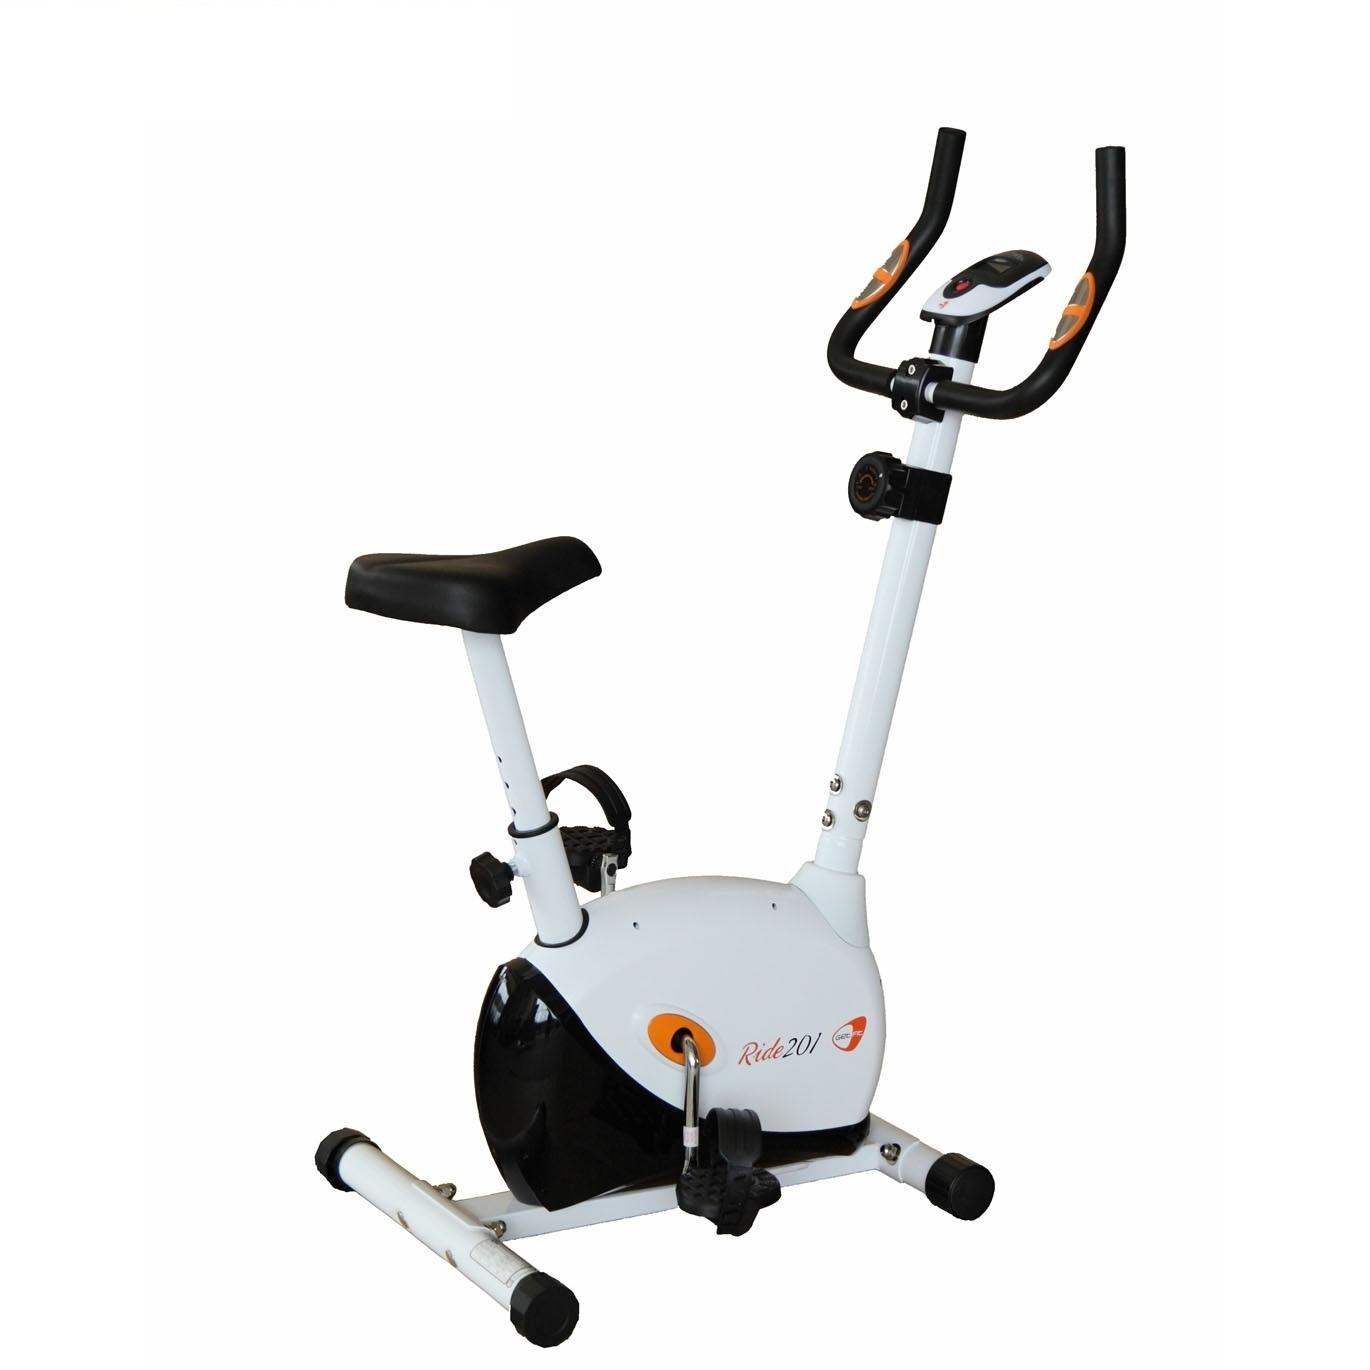 Image of Cyclette Manuale 100Kg Max 8 Livelli GetFit Ride 201